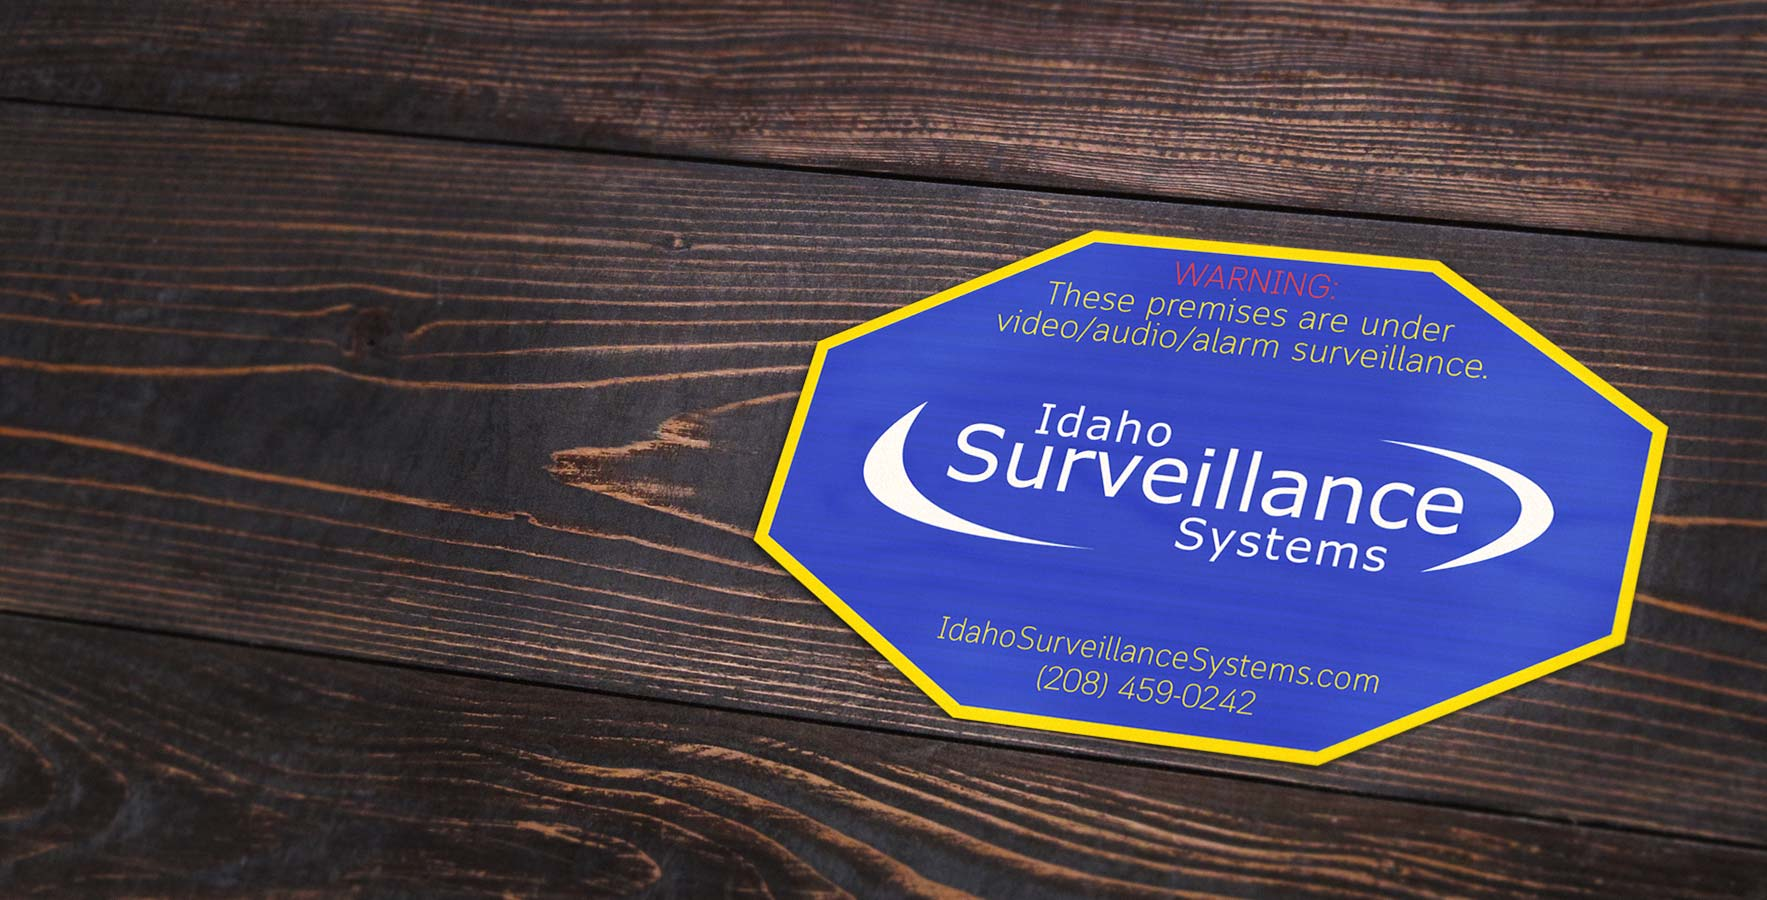 Video Surveillance Warning Sticker